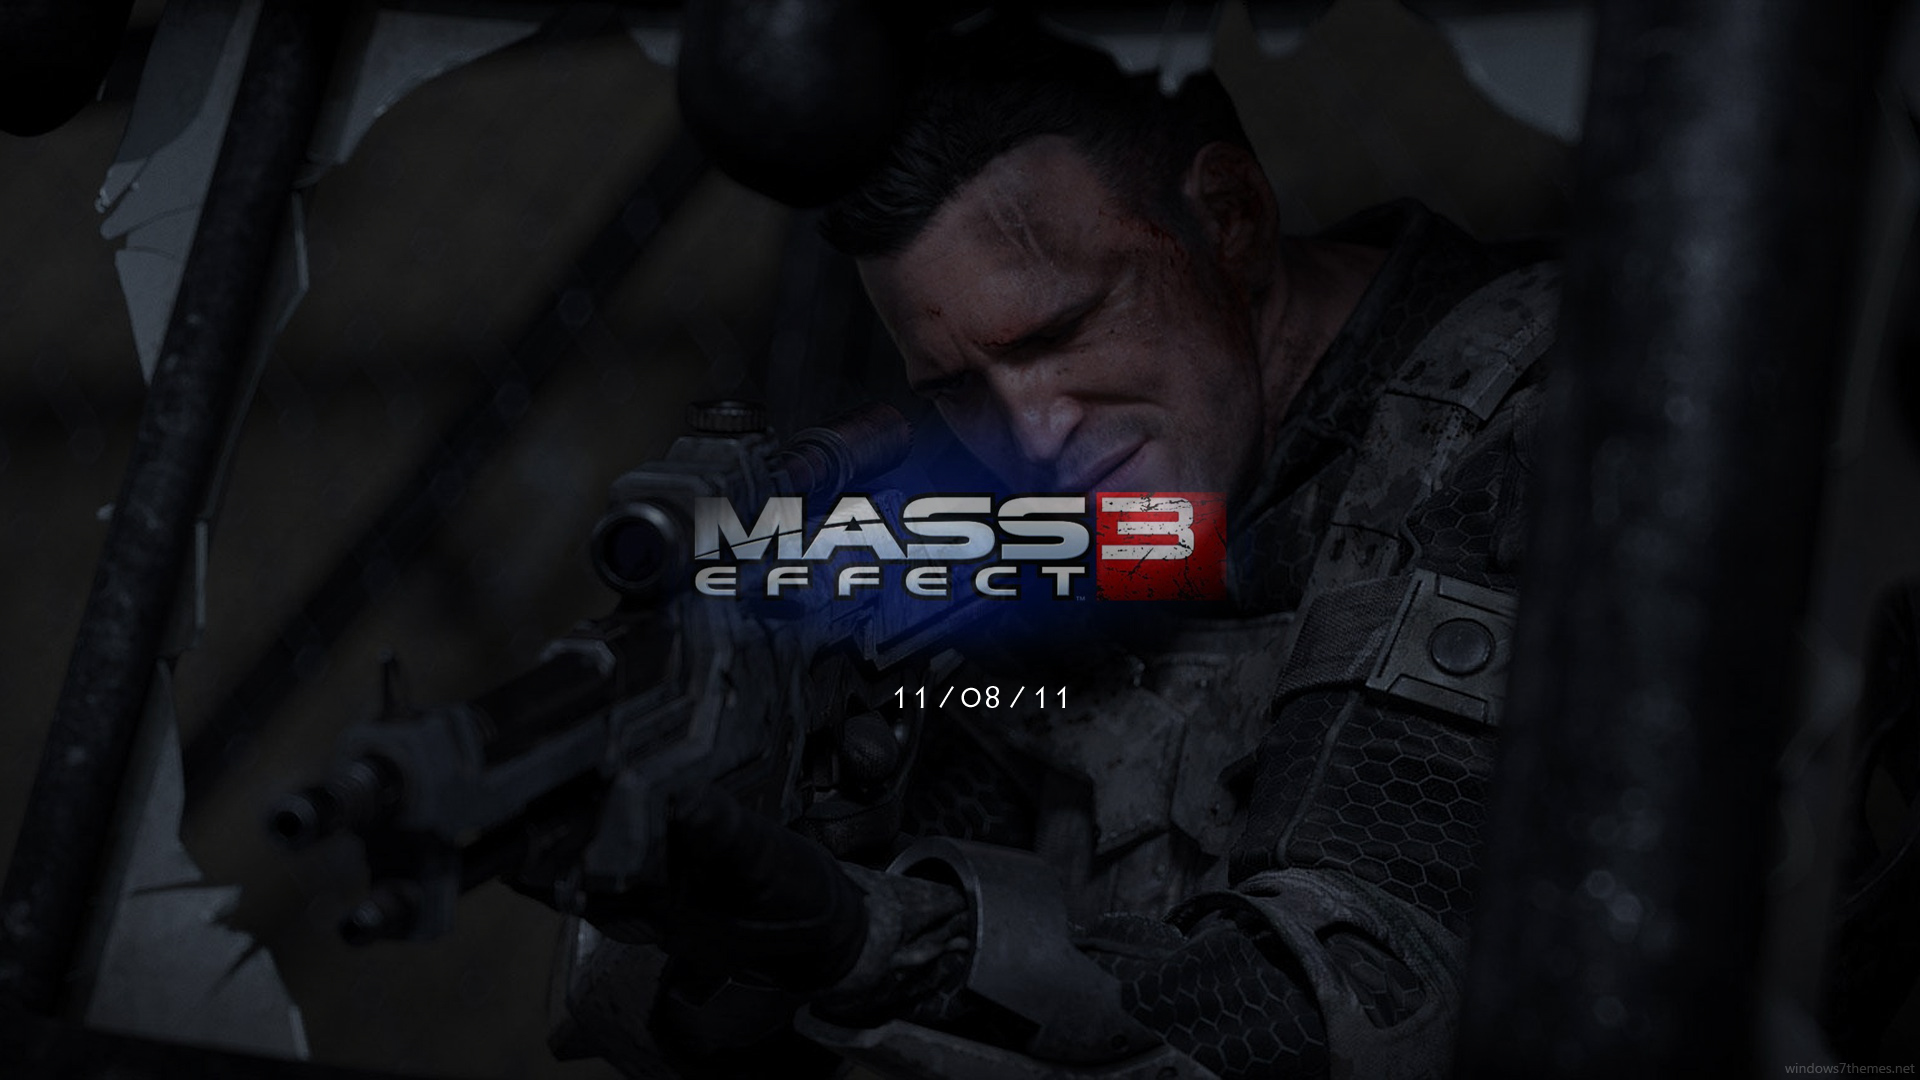 New Mass Effect 3 Wallpaper Hd Widescreen